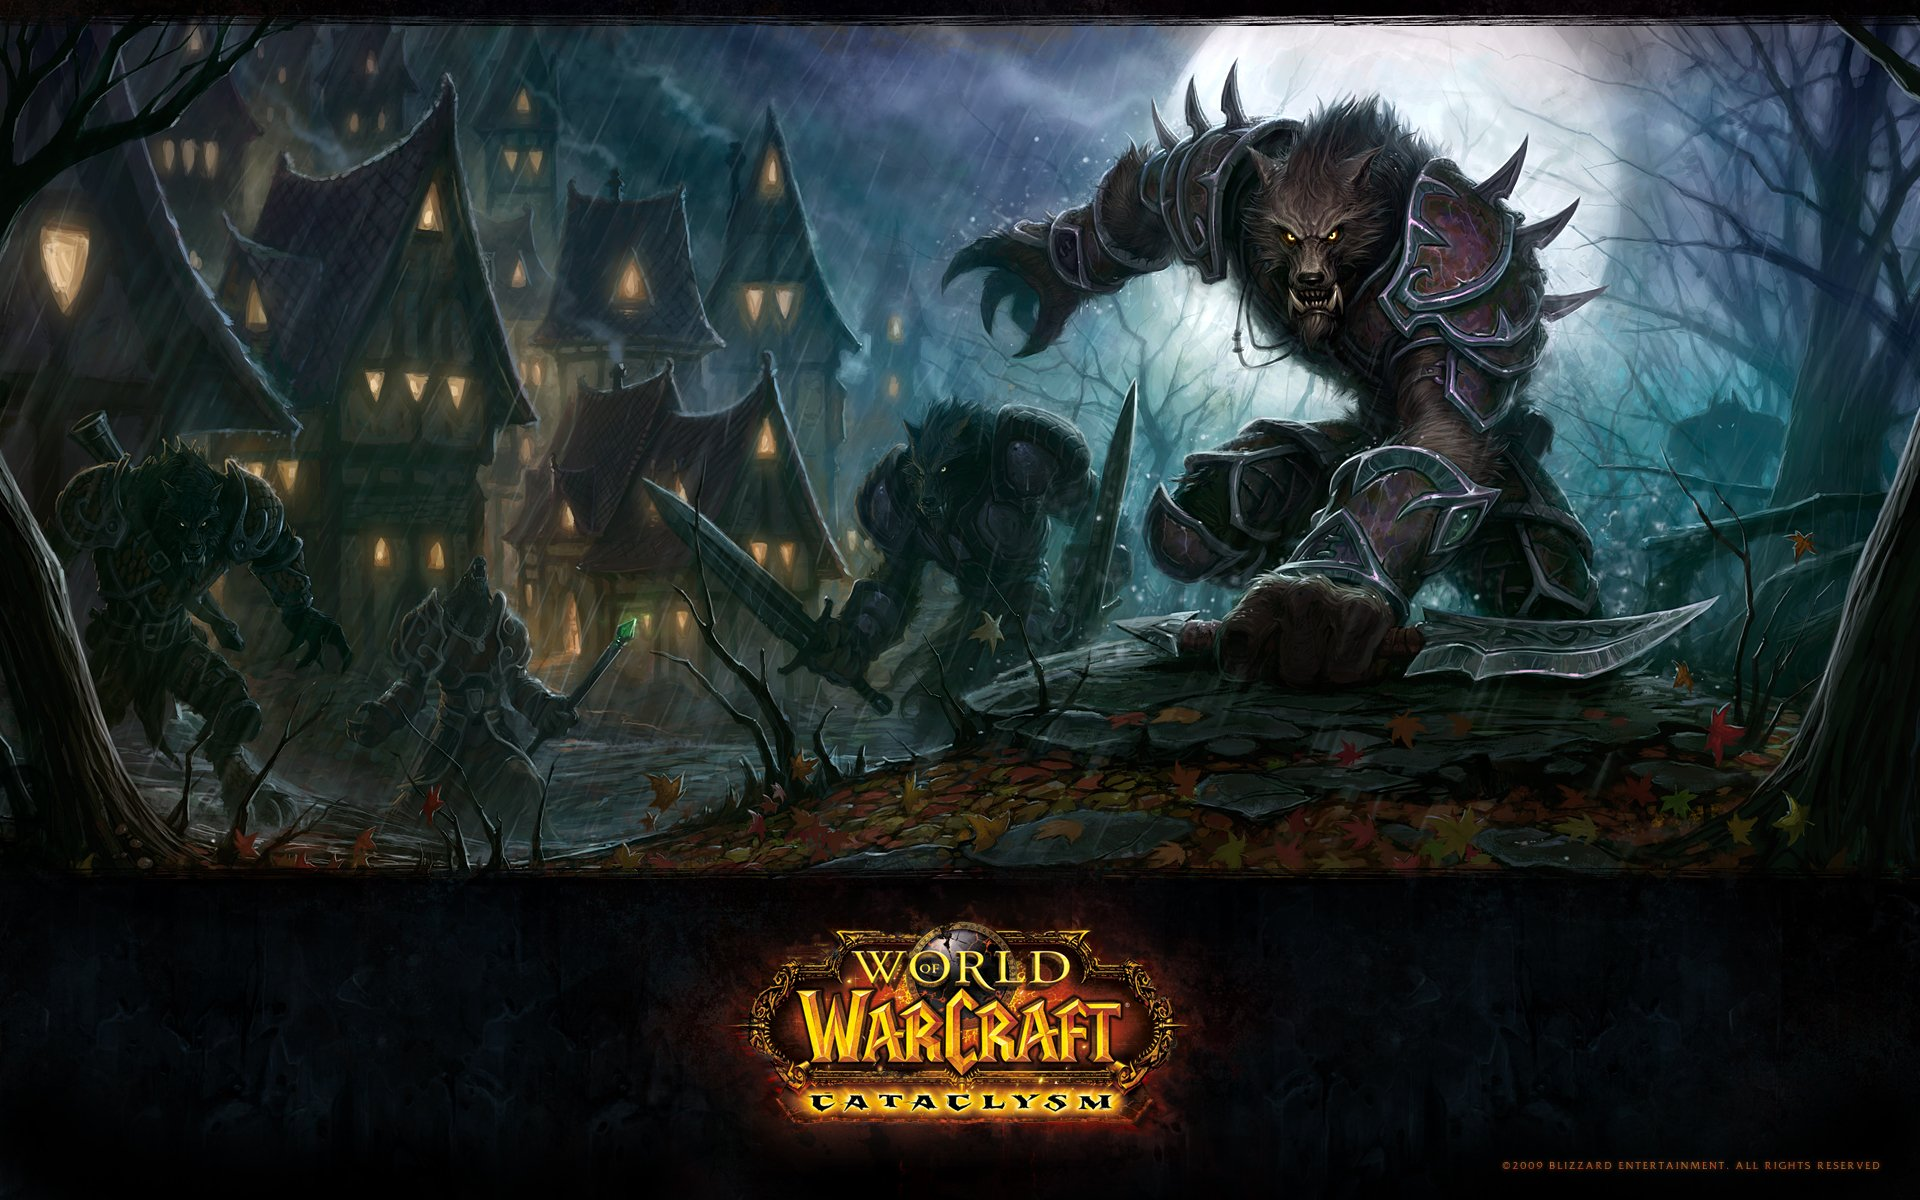 World of Warcraft Cataclysm Game Wallpapers HD Wallpapers 1920x1200